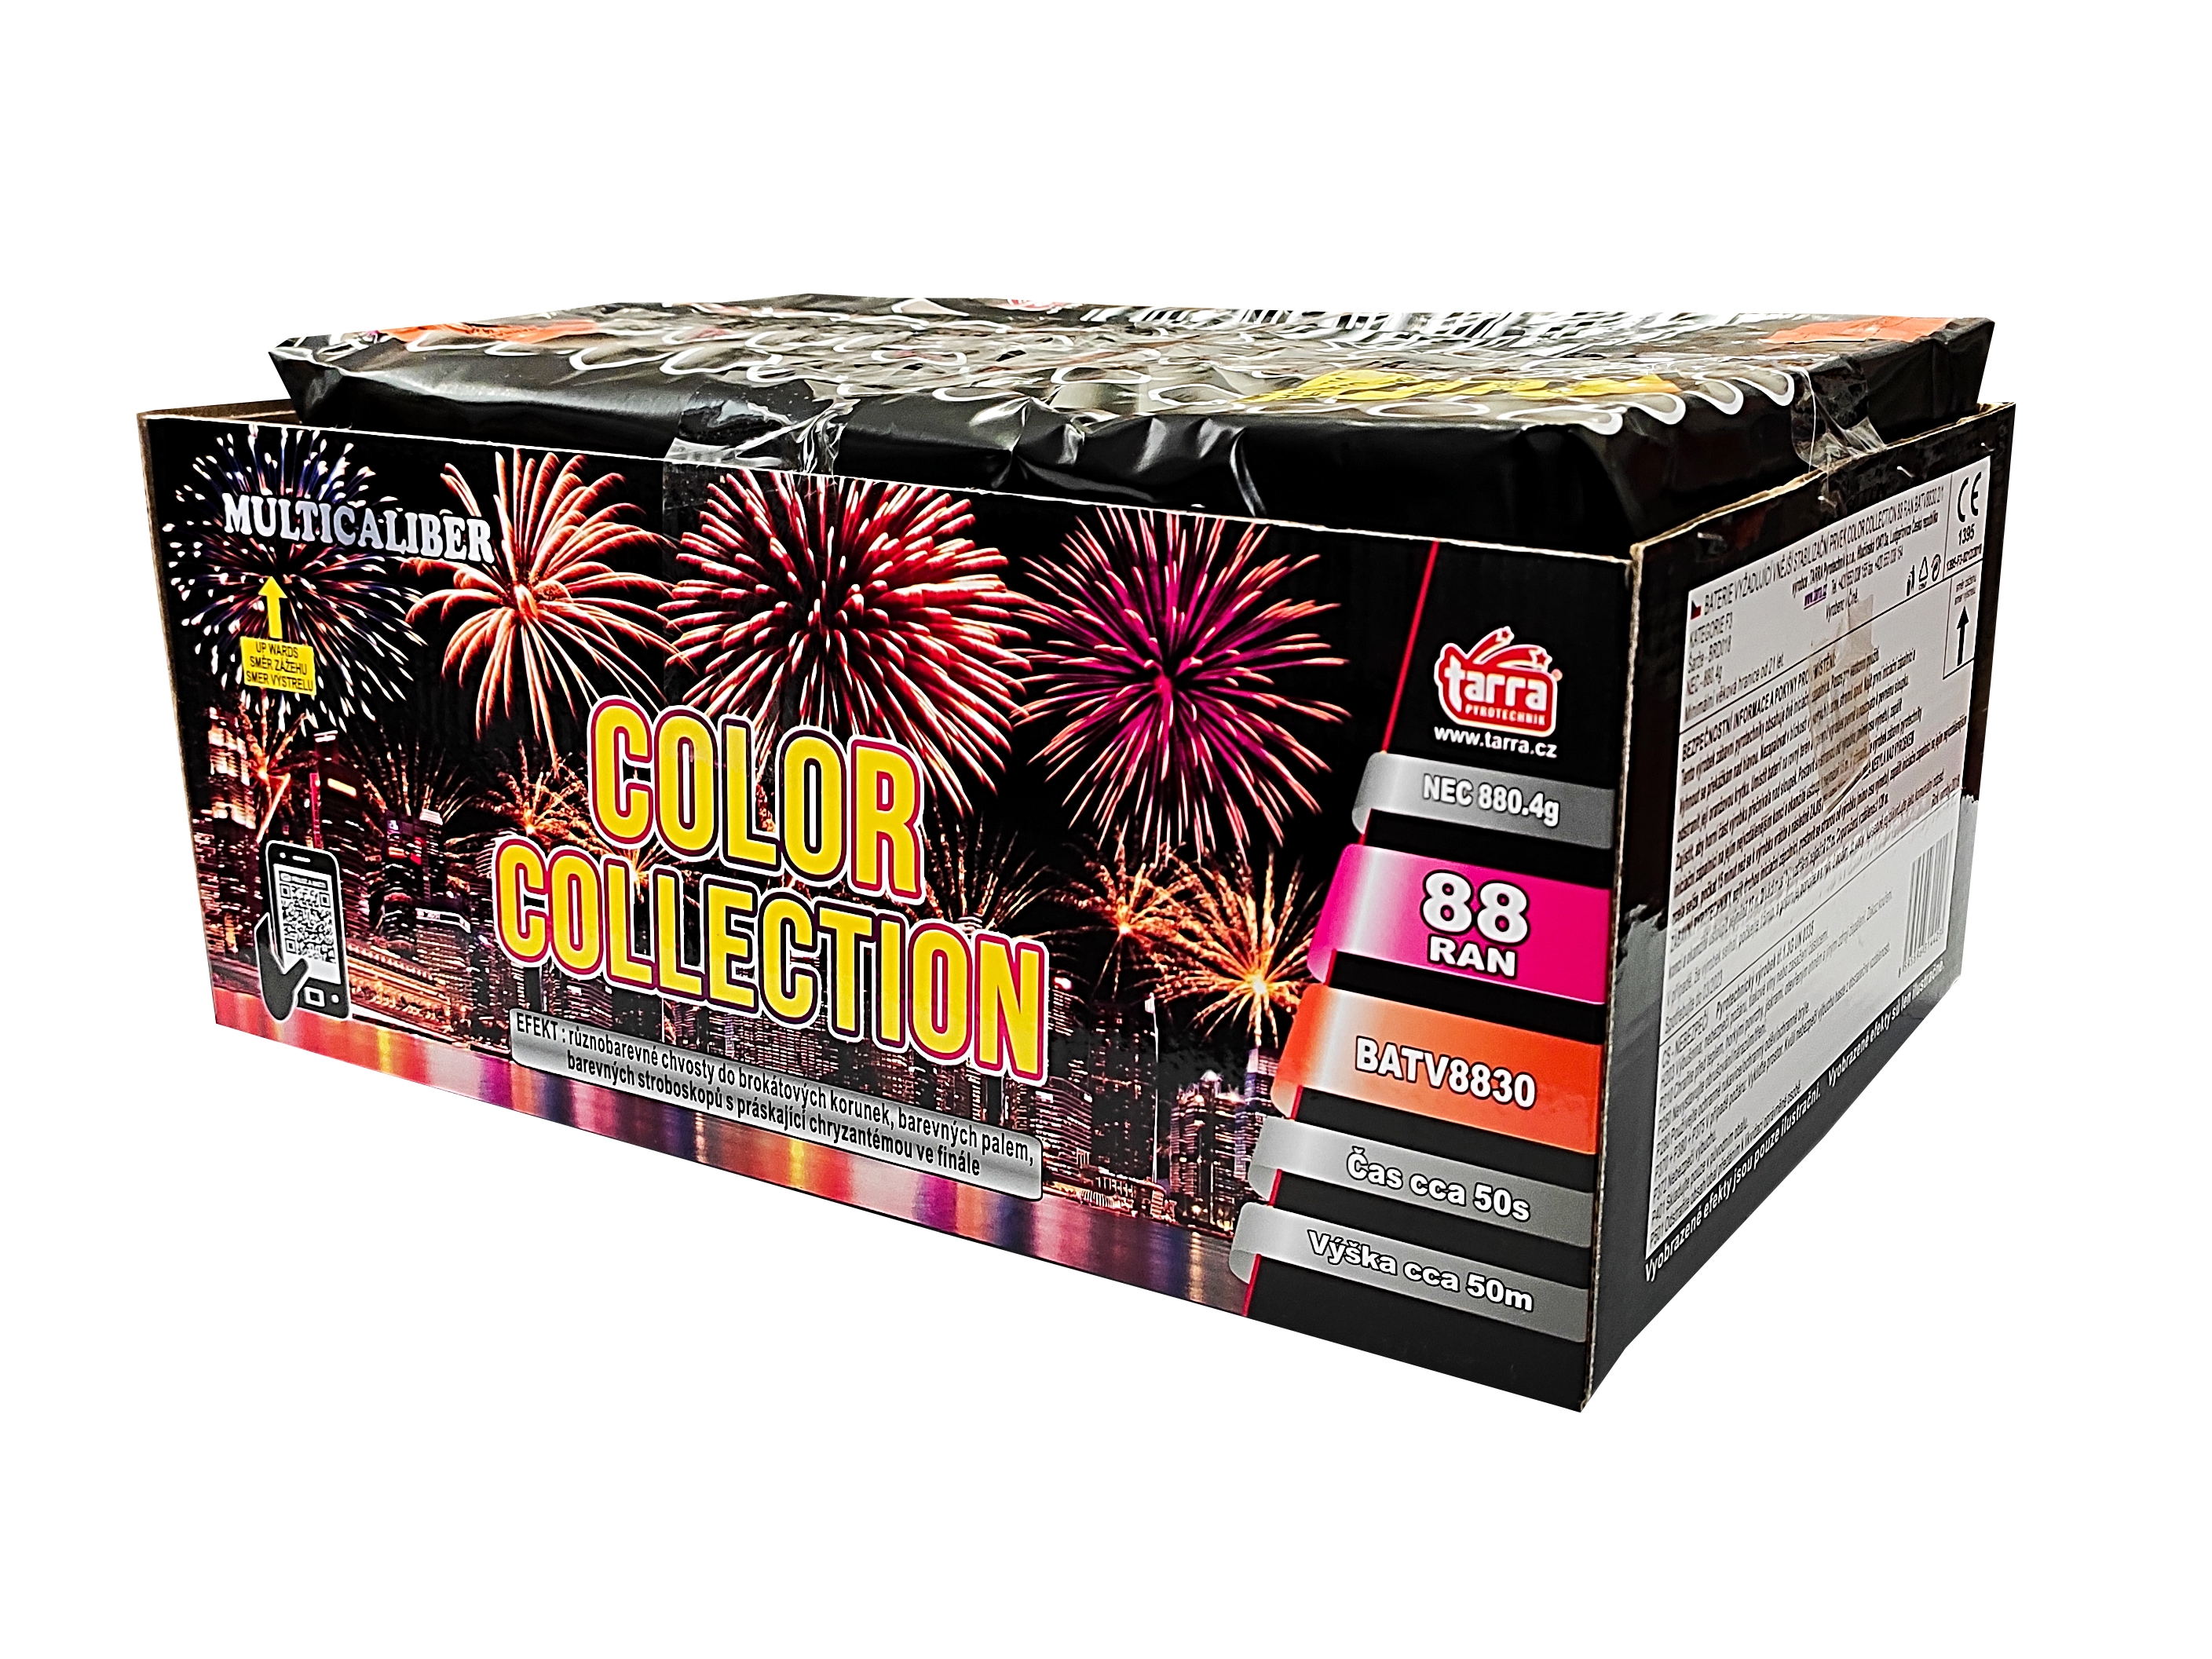 Pyrotechnika Kompakt 88ran / 20, 25 a 30mm Color Collection